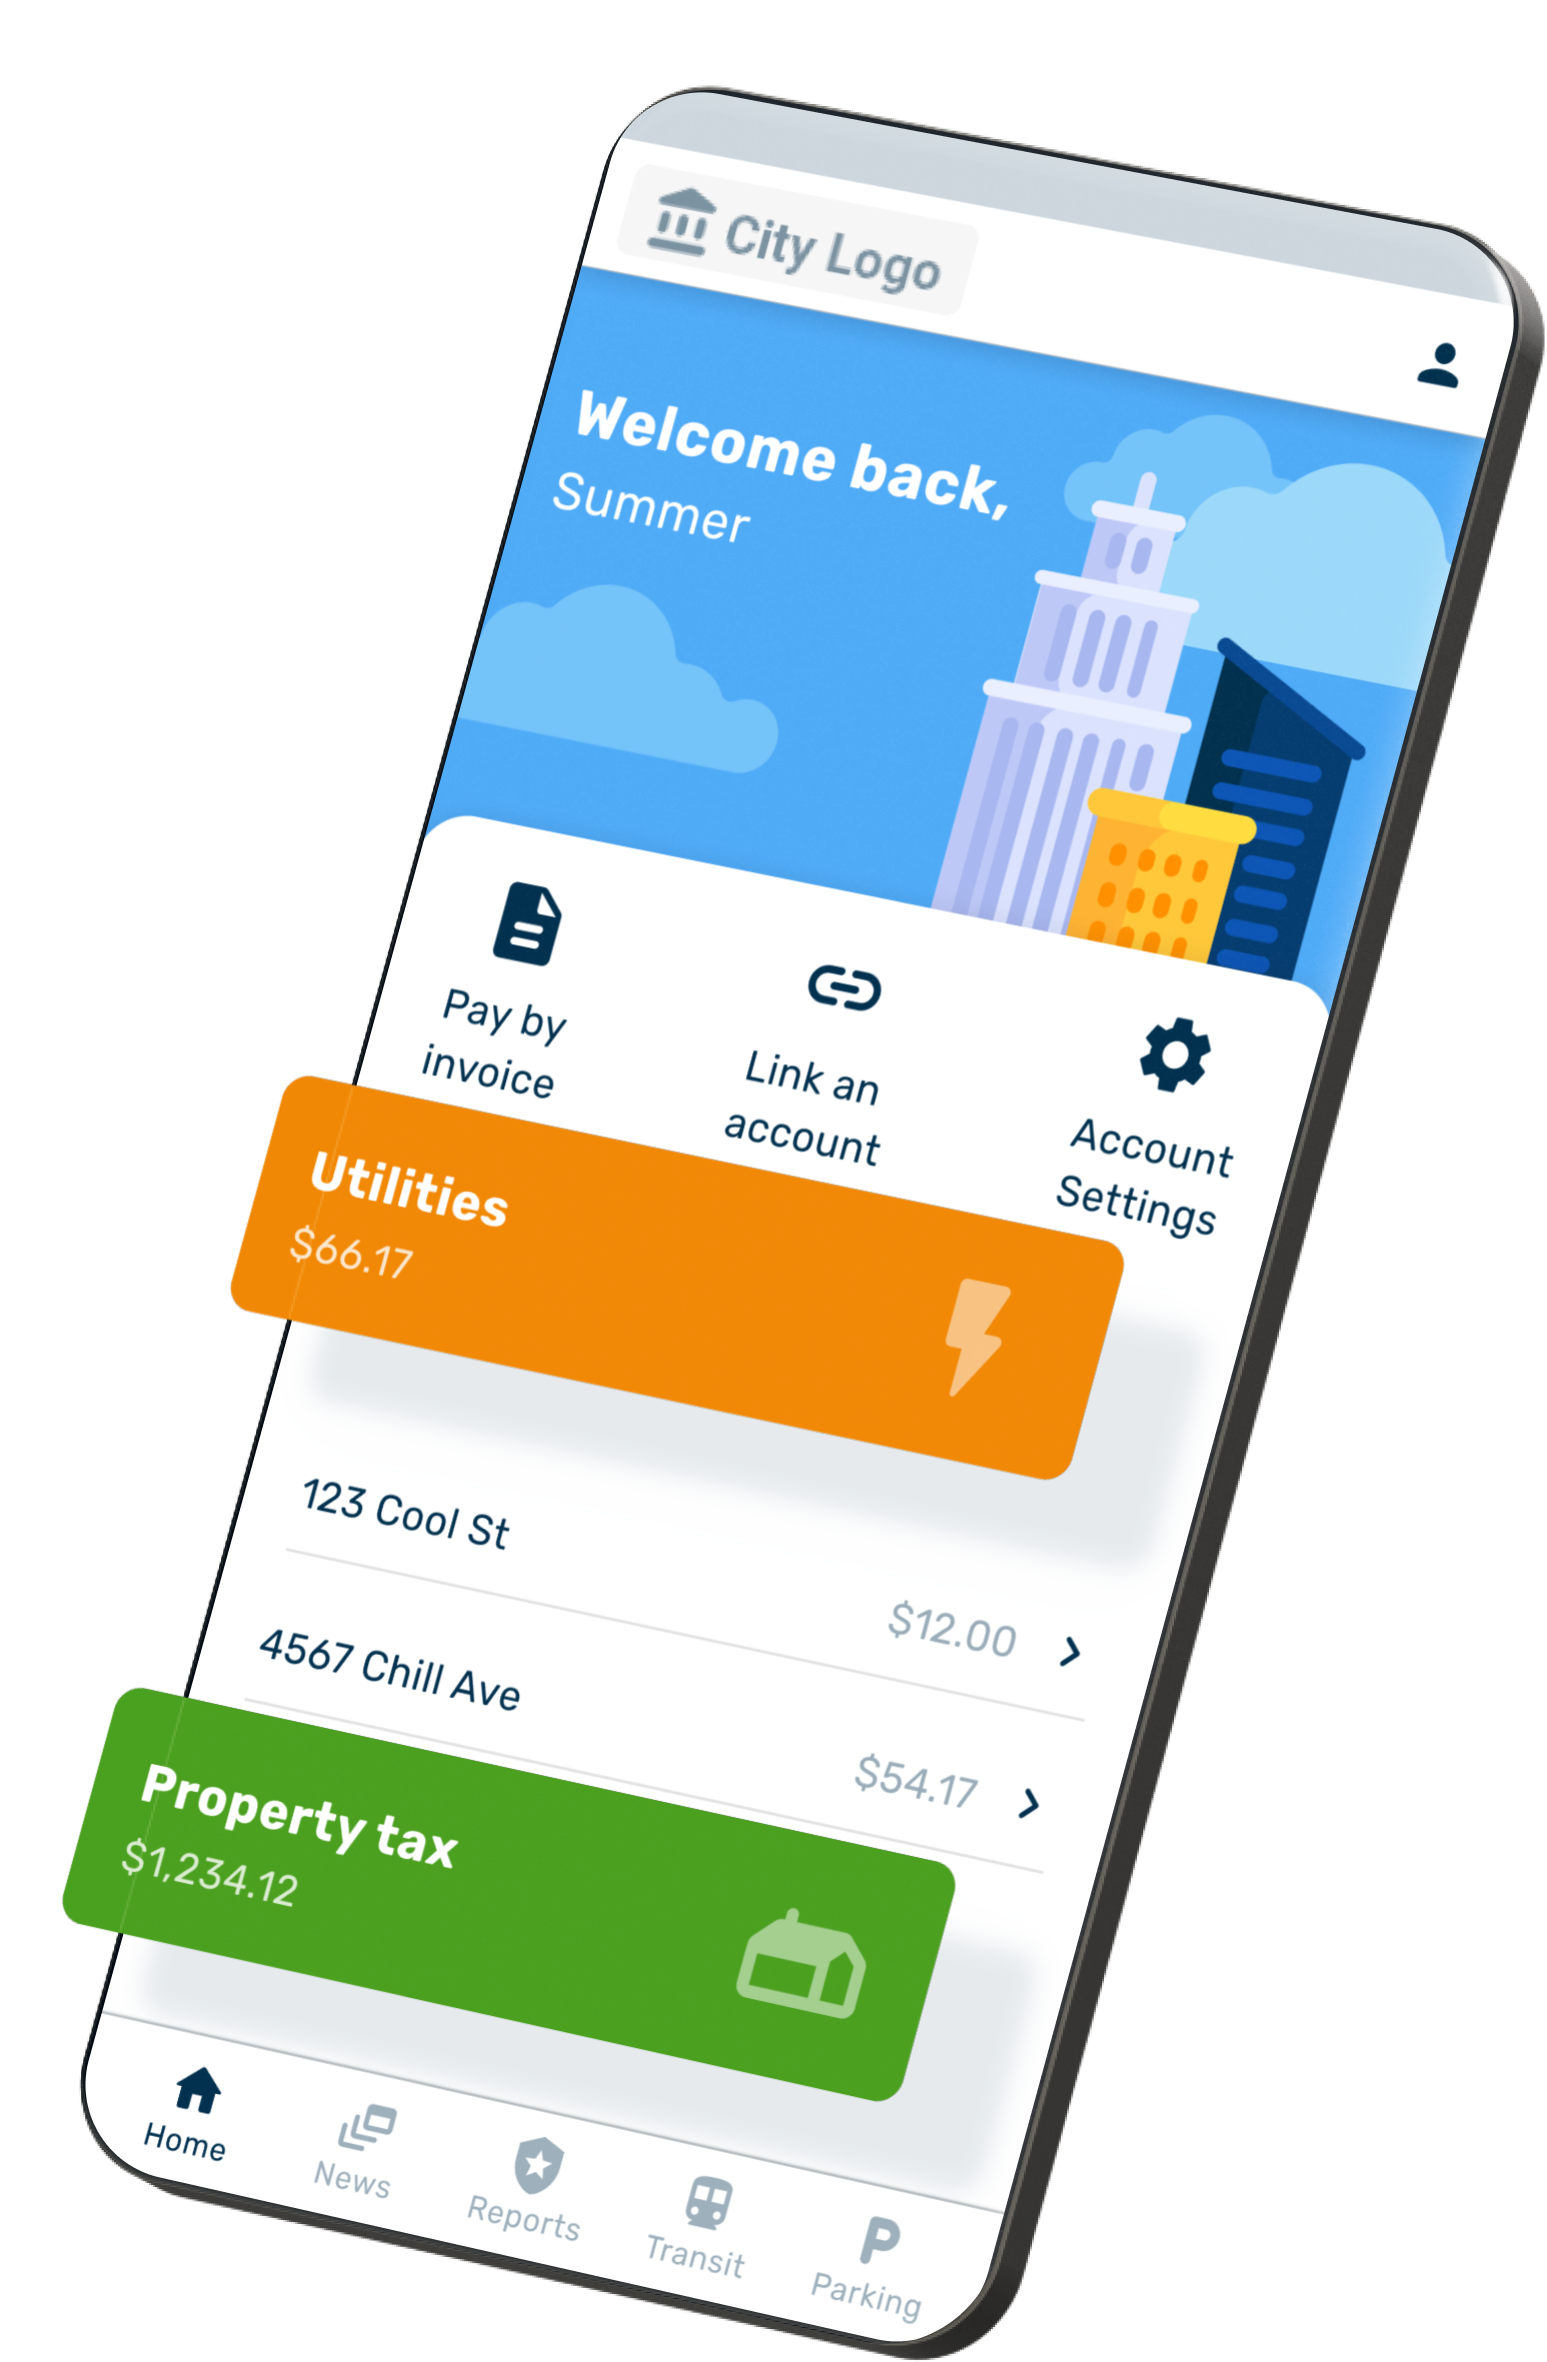 The Smart Living portal allows citizens to look up and manage their payments for taxes, utilities and to request licences and permits.